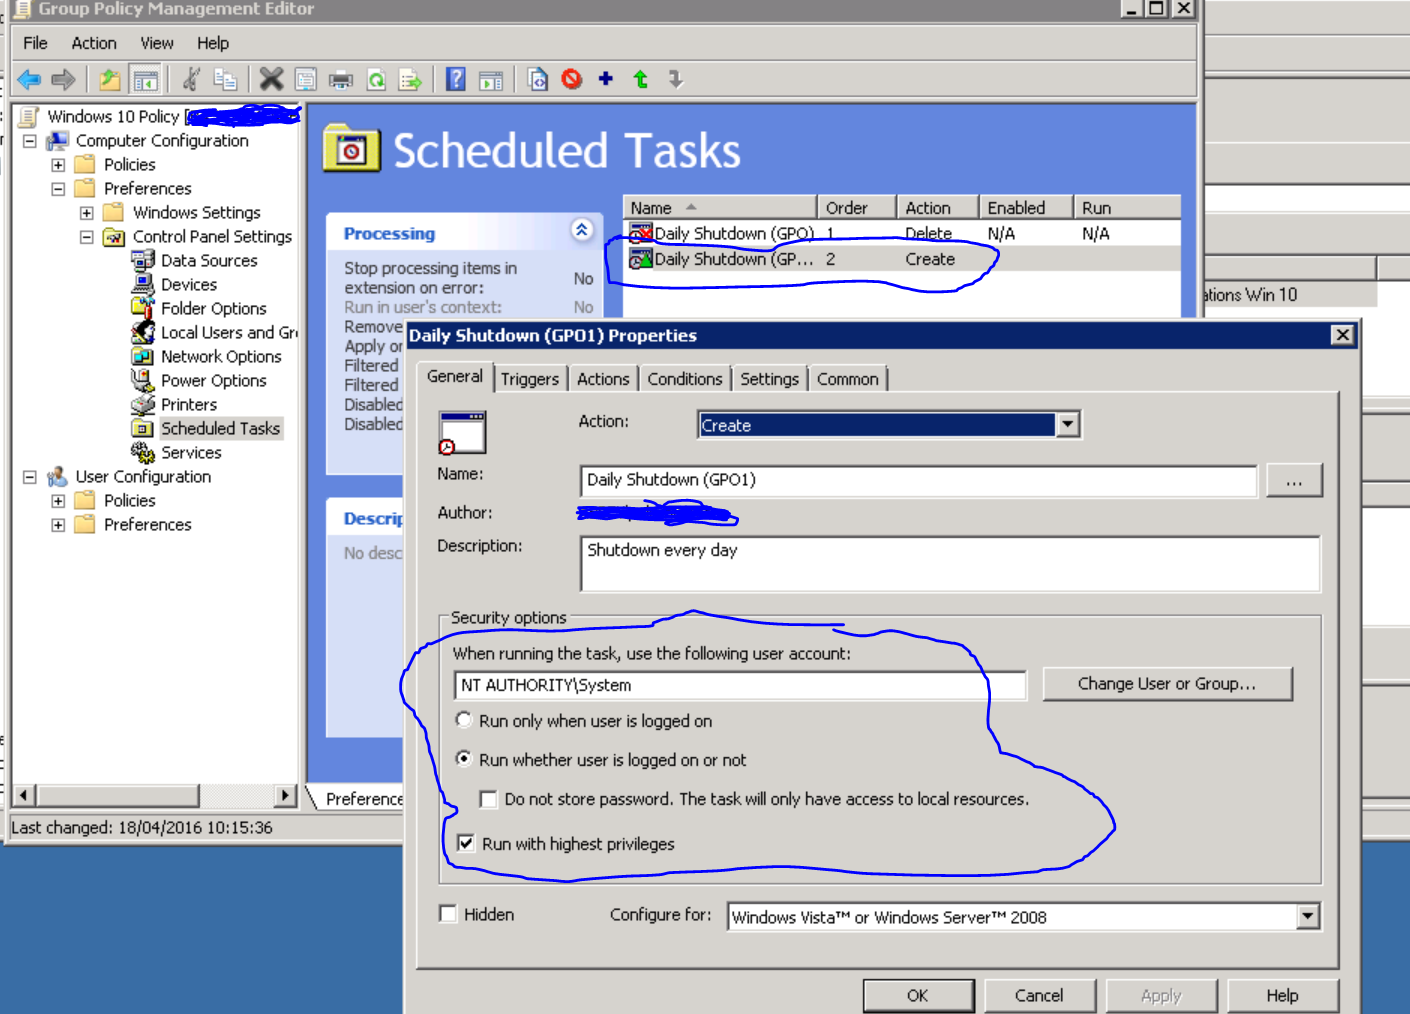 Group Policy Scheduled task preferences windows 10?